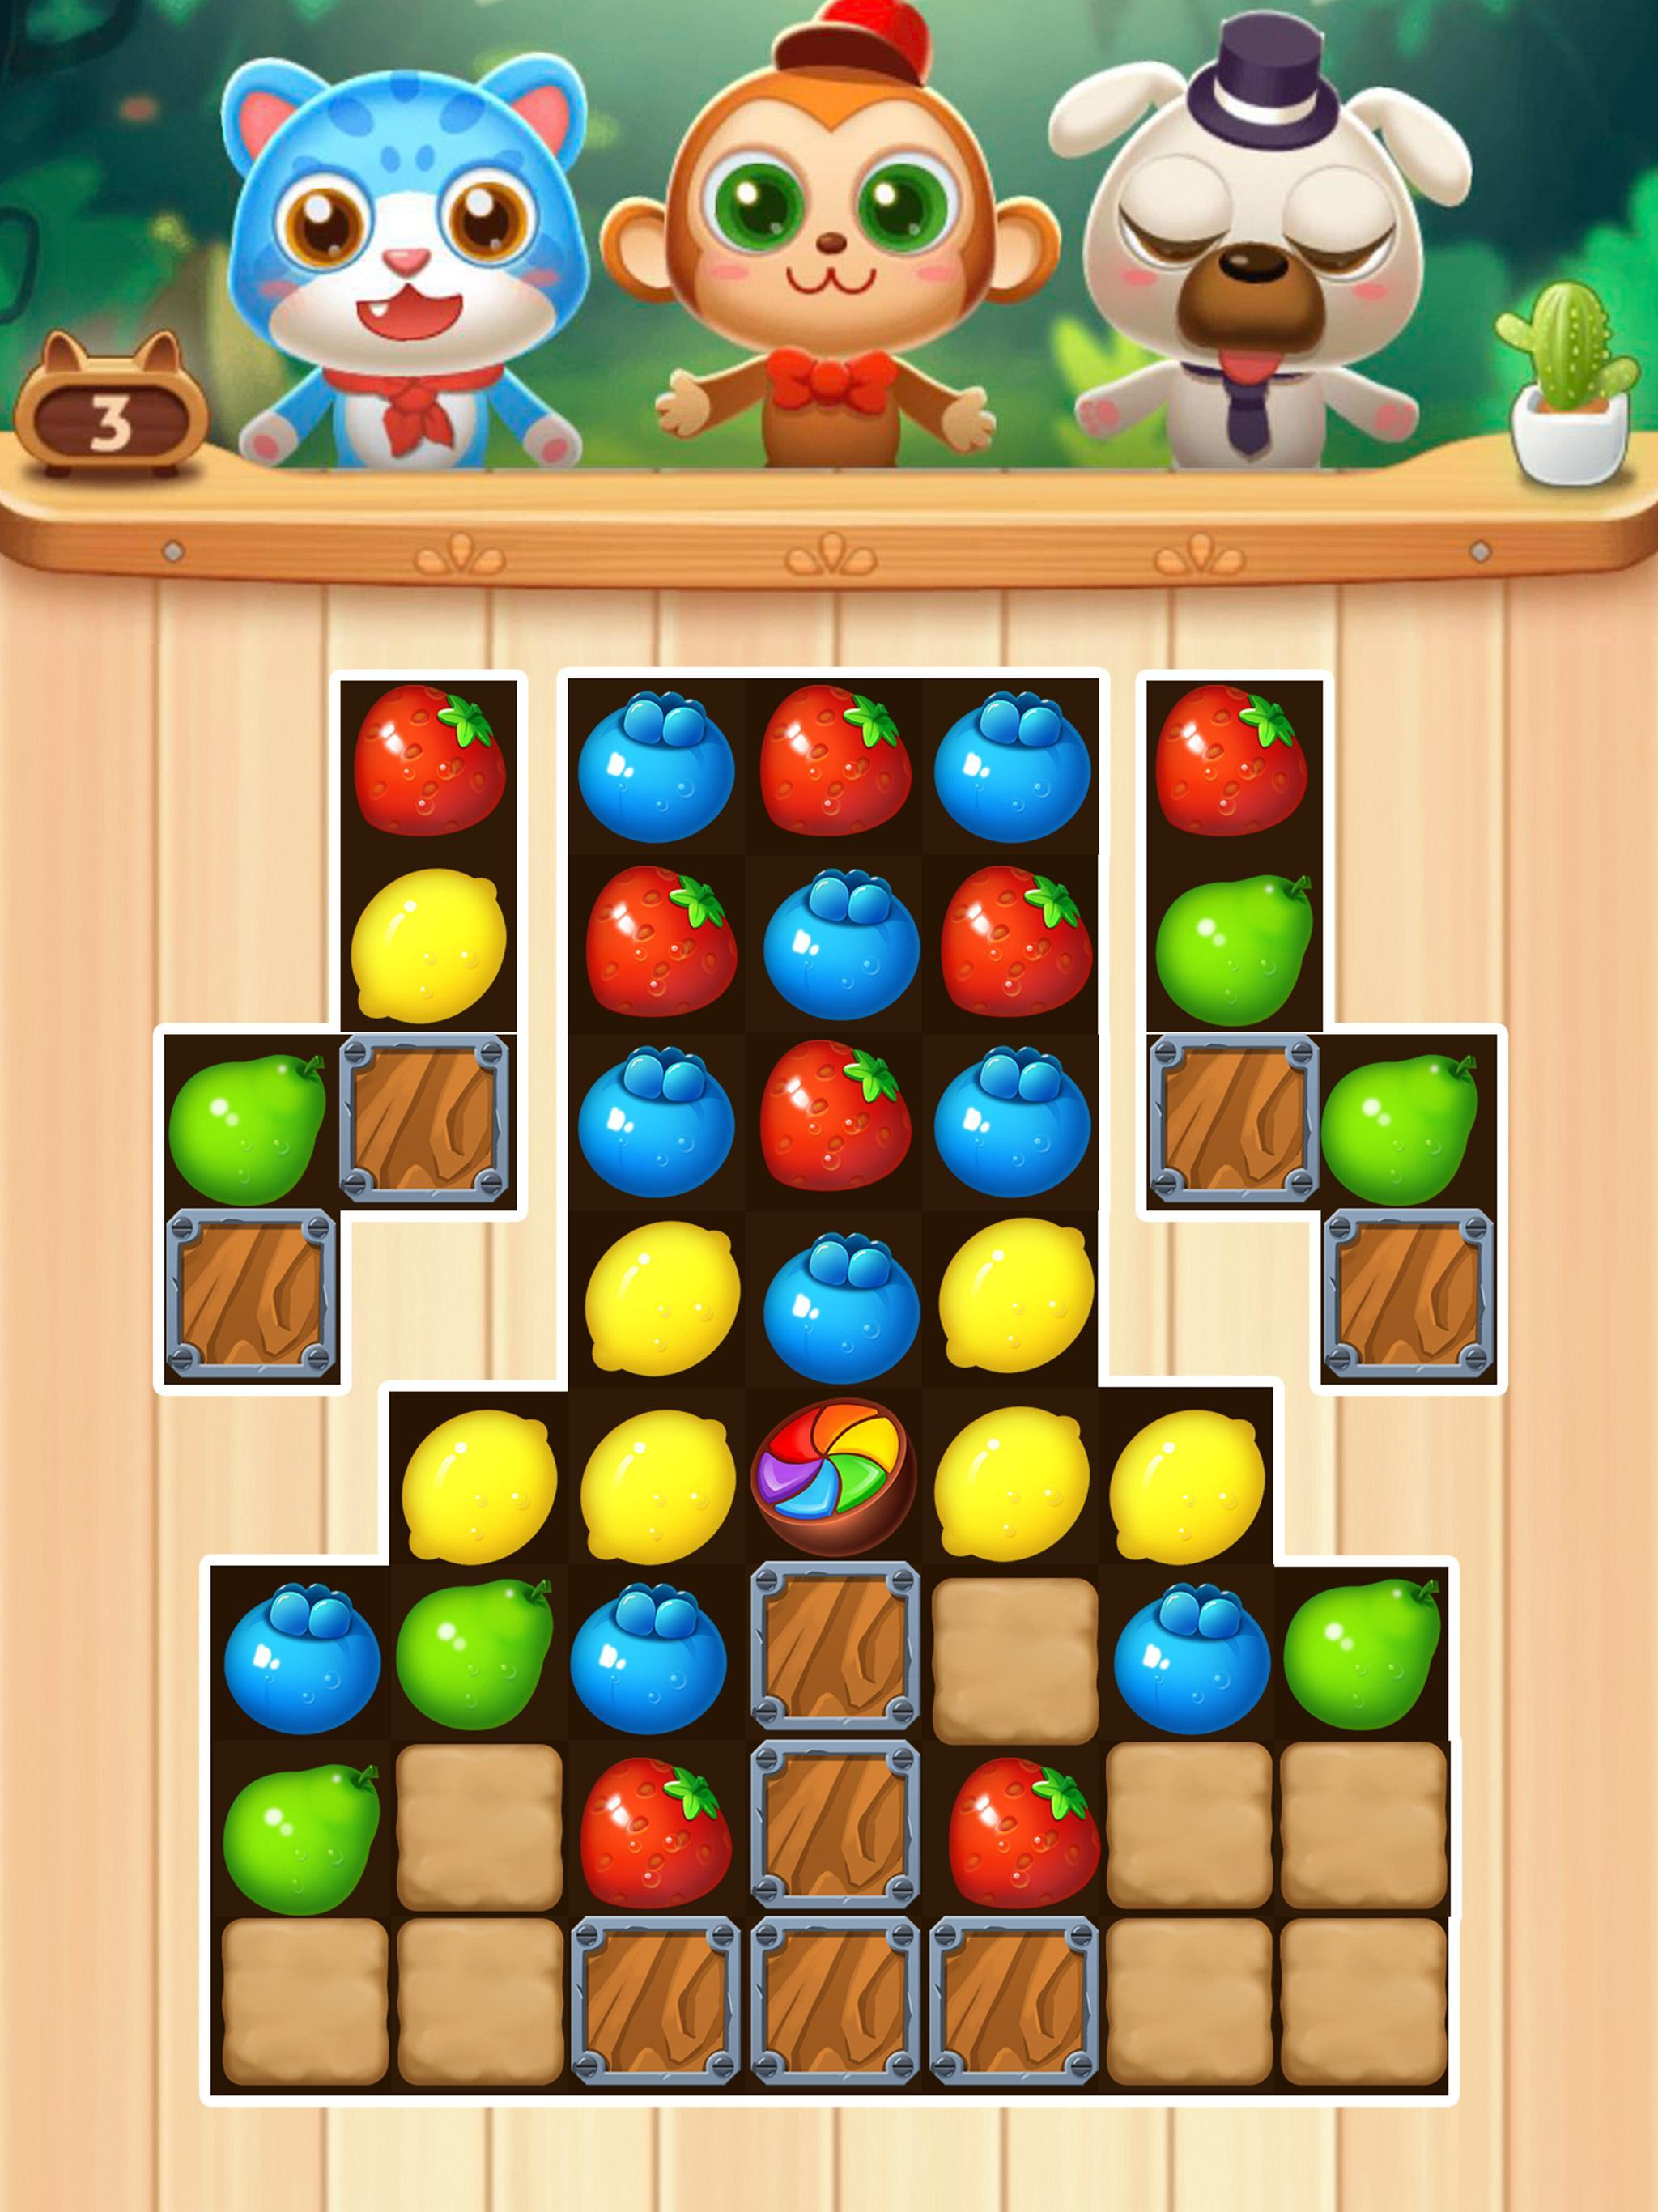 Fruit Fever-best match3 puzzle game 1.0.1 Screenshot 5